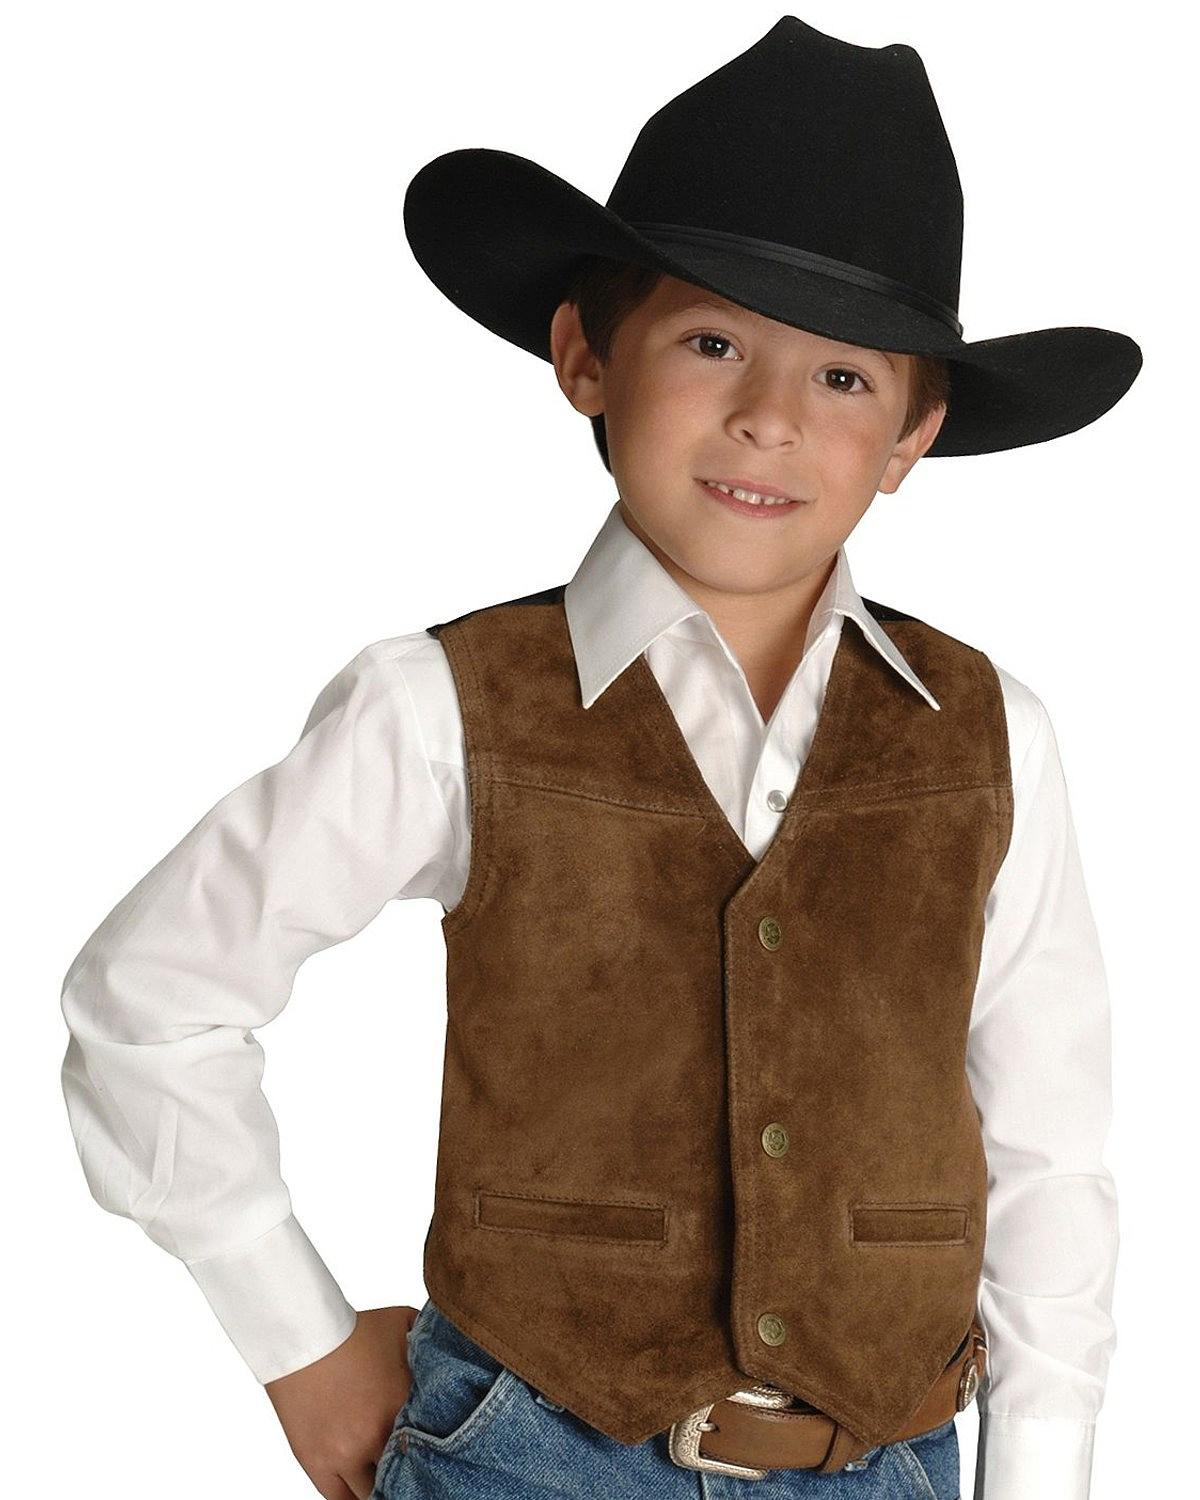 Sheplers has become the world's leading provider of apparel and accessories for the country/western lifestyle including: traditional cowboy wear, fashionable western wear, country inspired casual wear and authentic work gear.